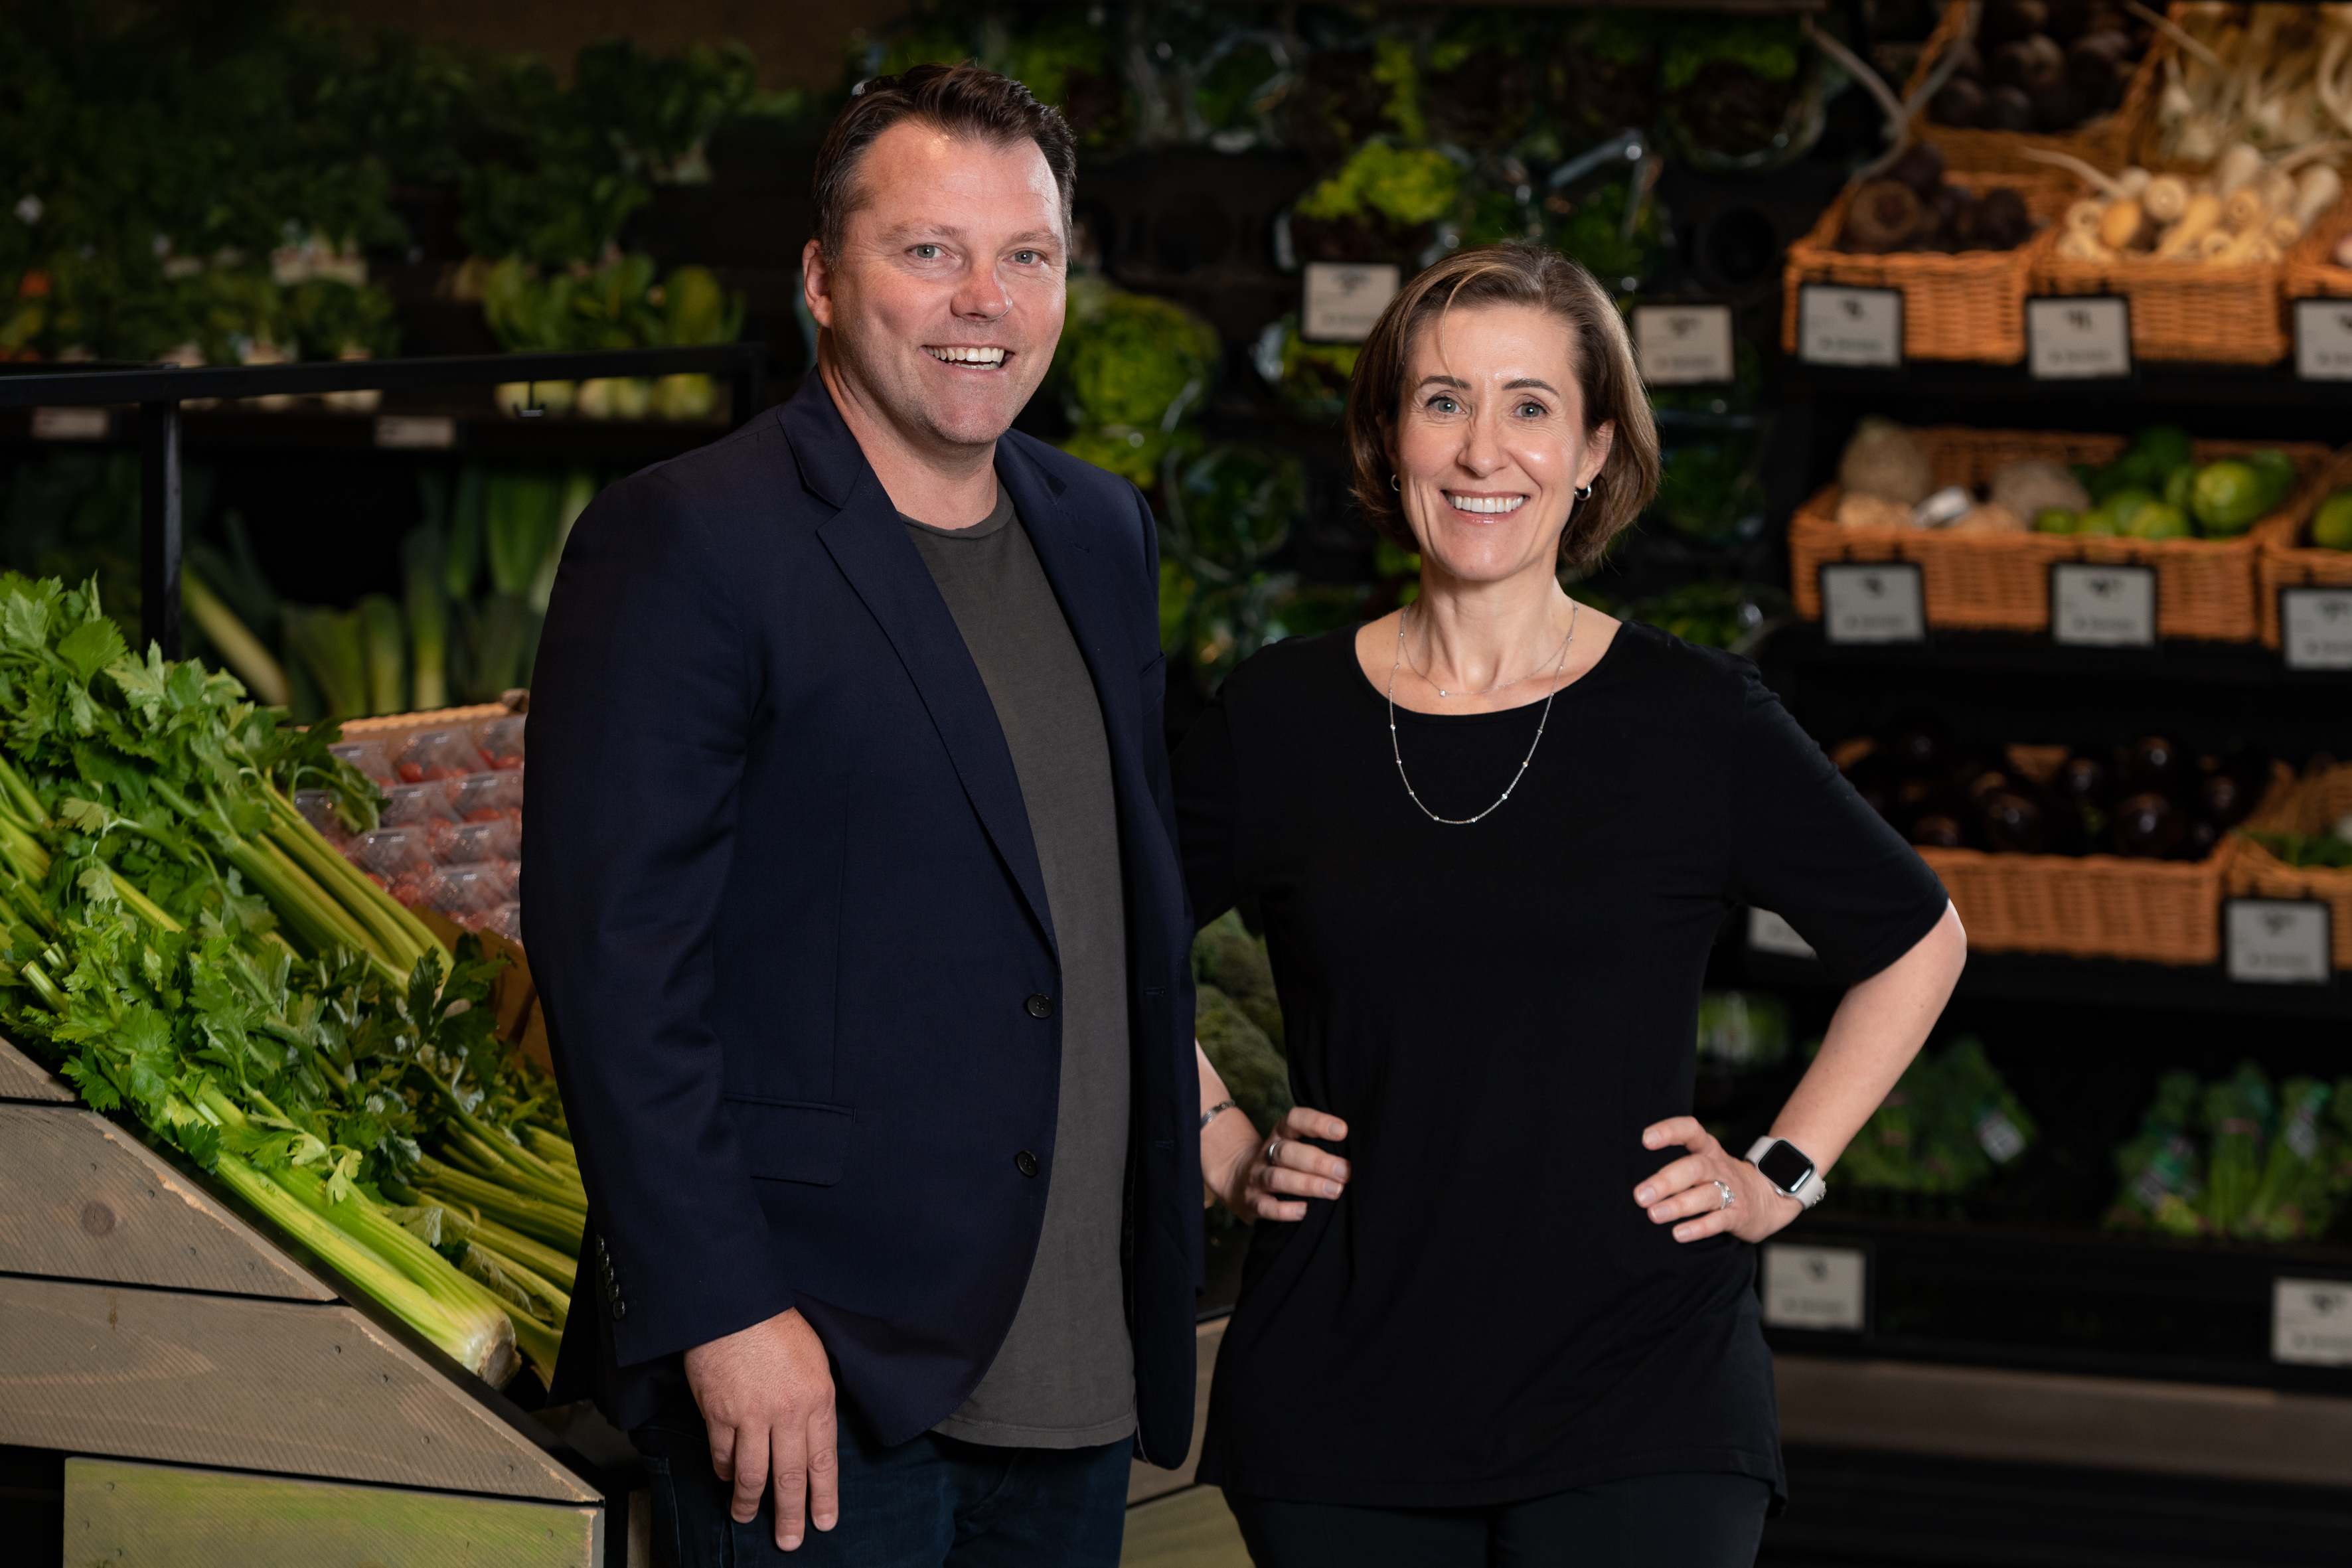 Jason Wyatt and Ingrid Maes in a Wollies Store